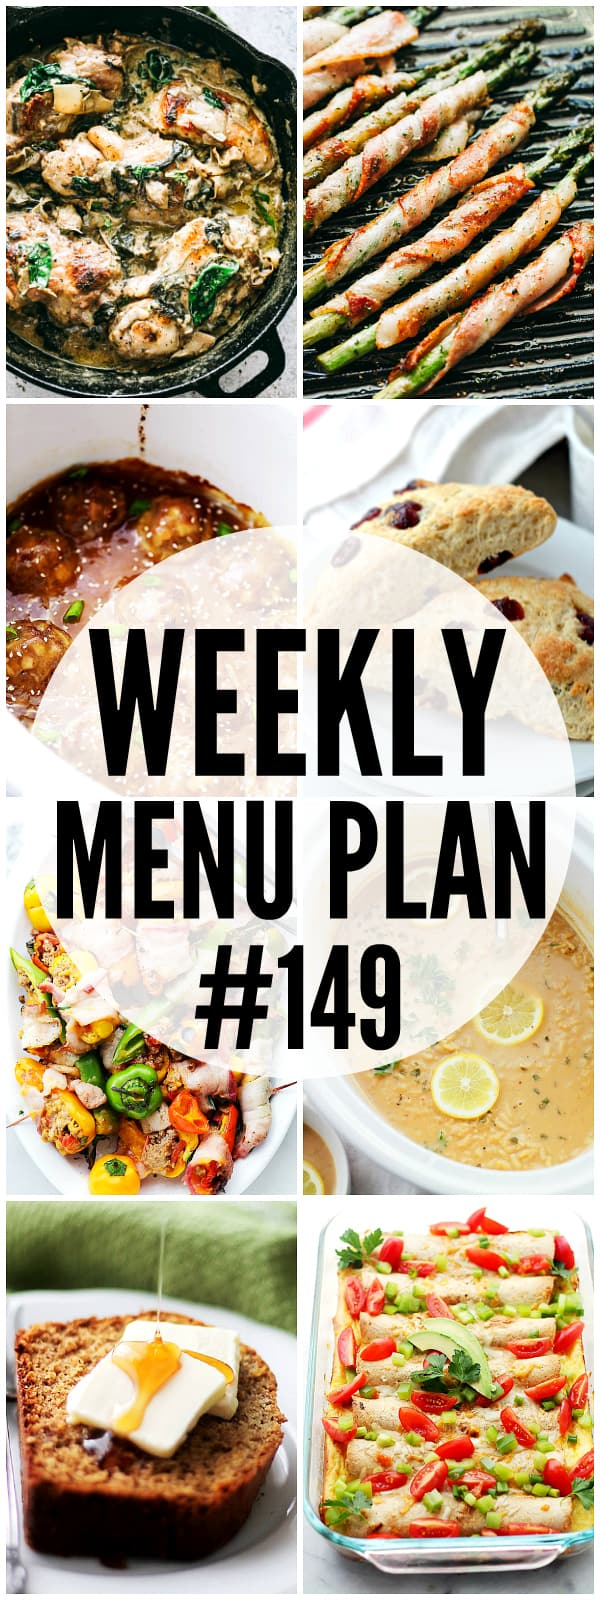 WEEKLY MENU PLAN (#149) – A delicious collection of dinner, side dish and dessert recipes to help you plan your weekly menu and make life easier for you!